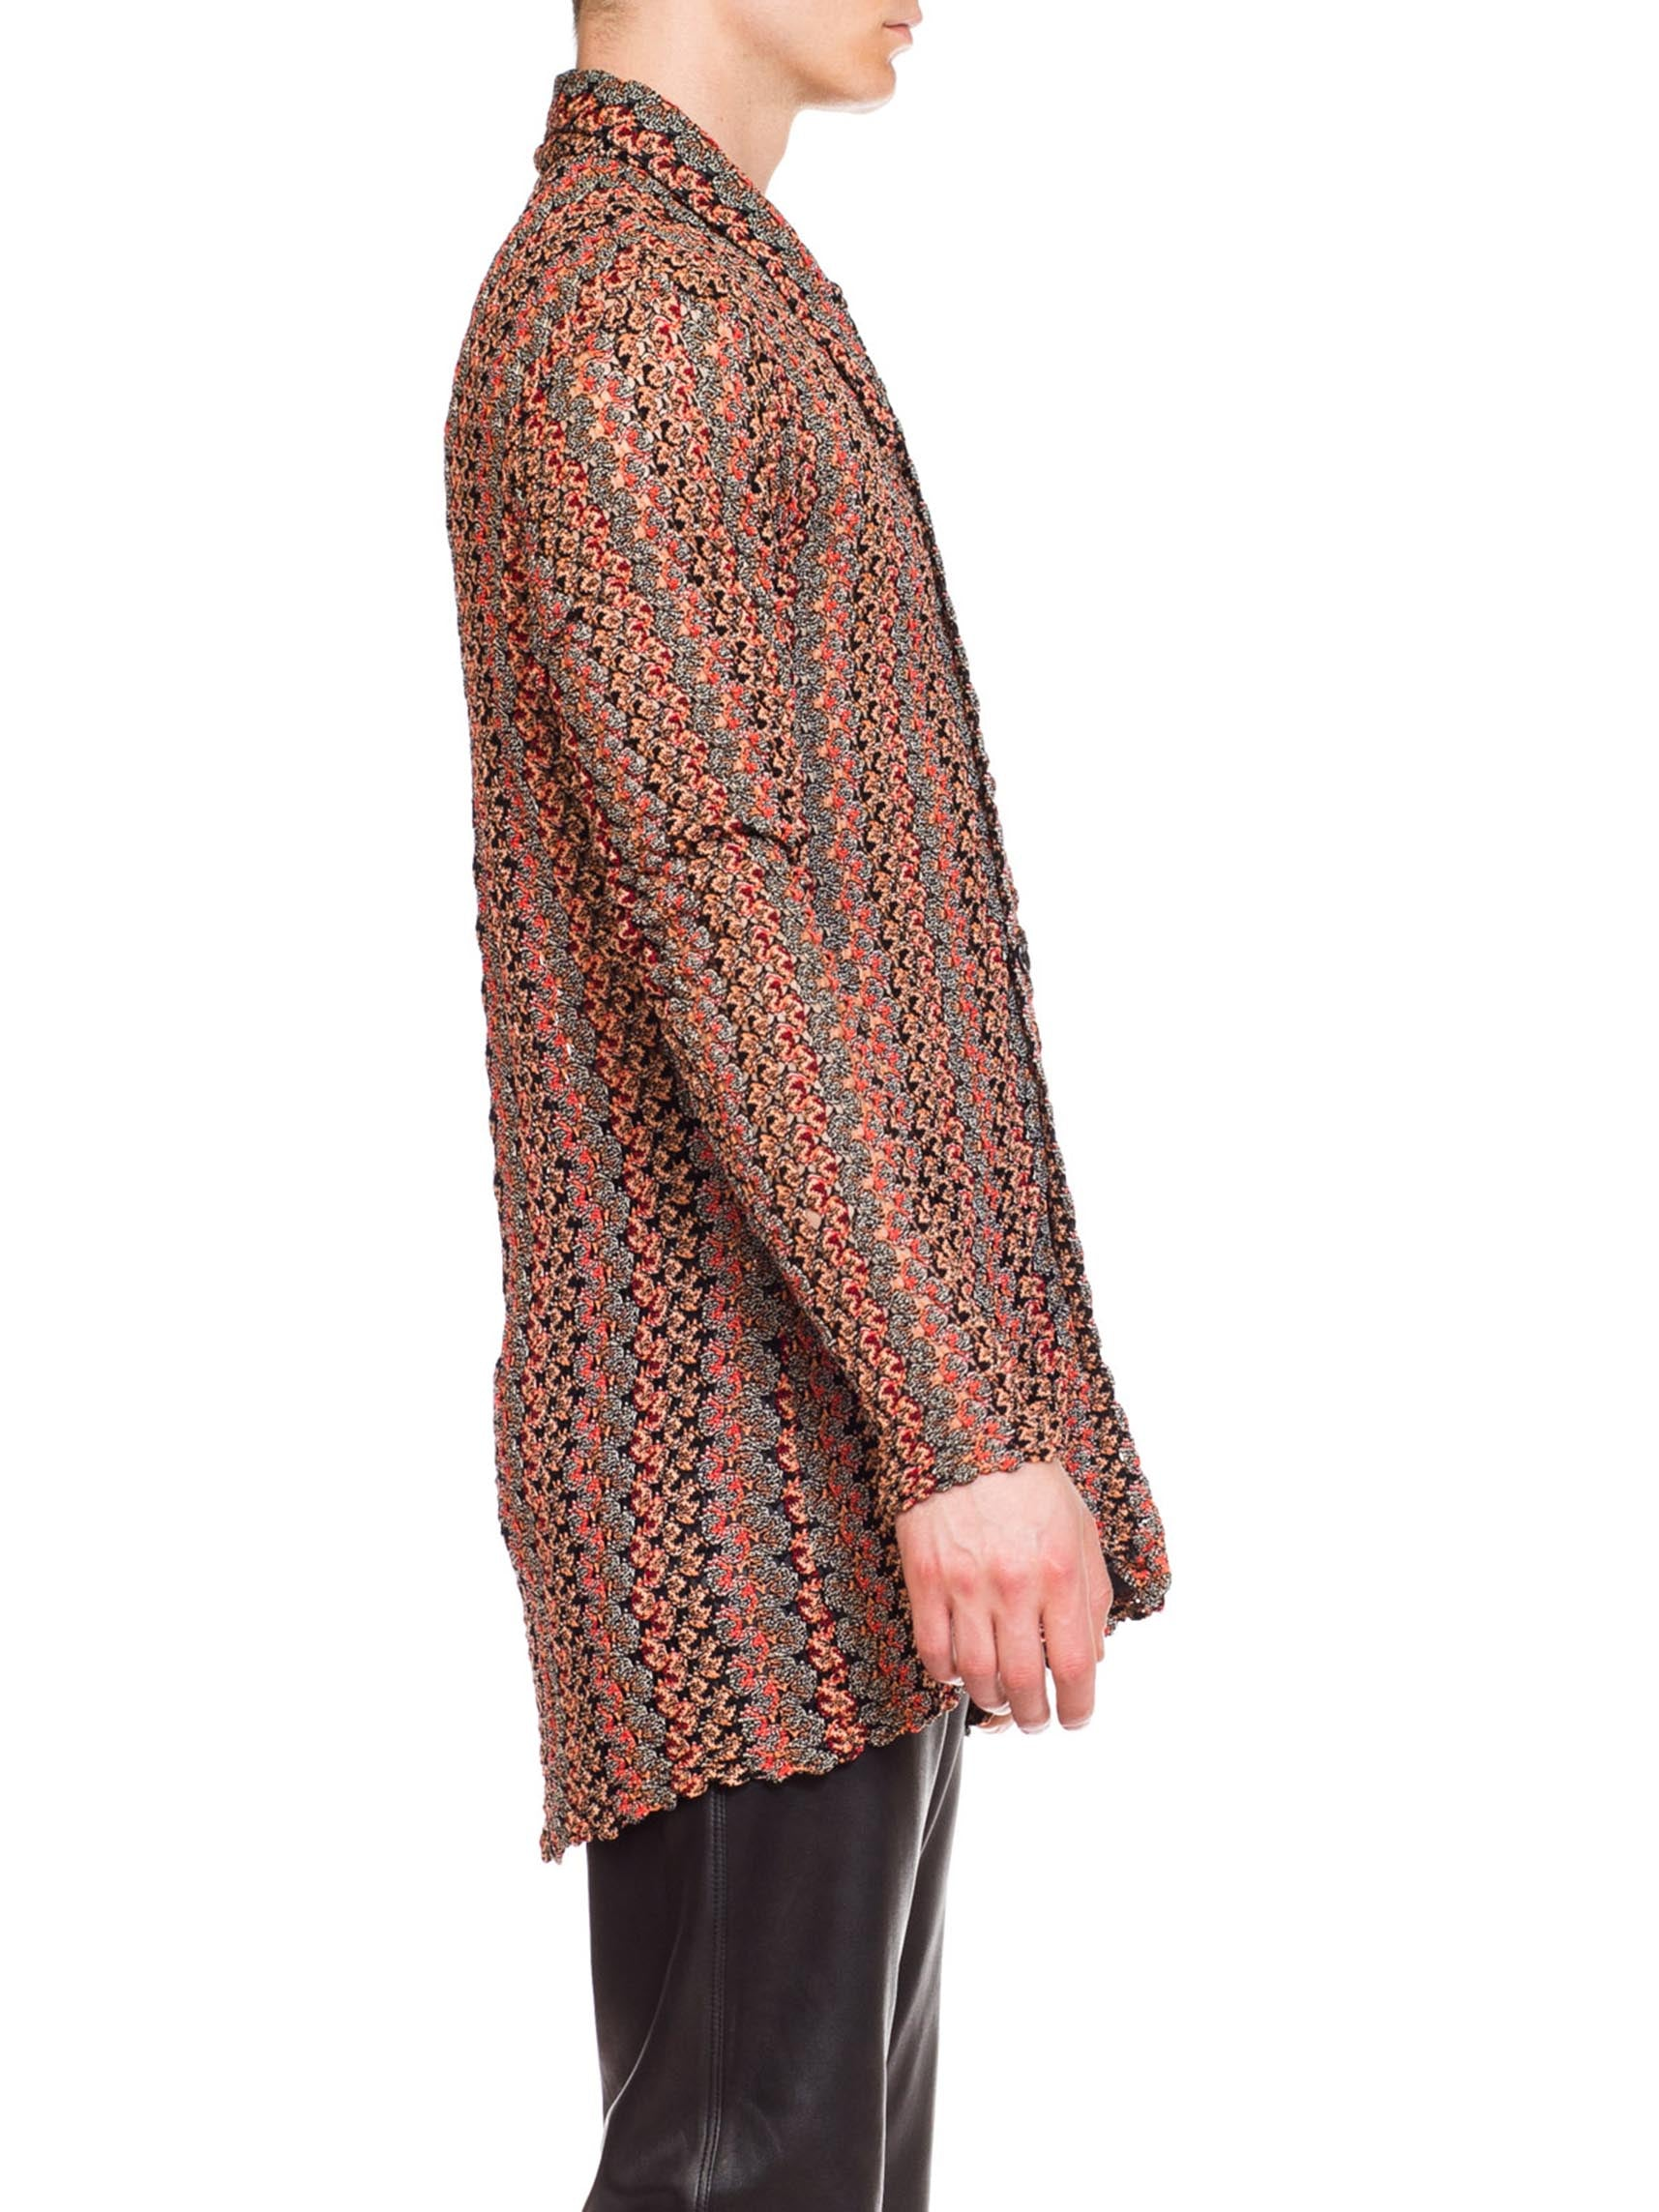 1970S MISSONI Style Red & Black Acetate Knit Men's Sheer Lace Disco Shirt